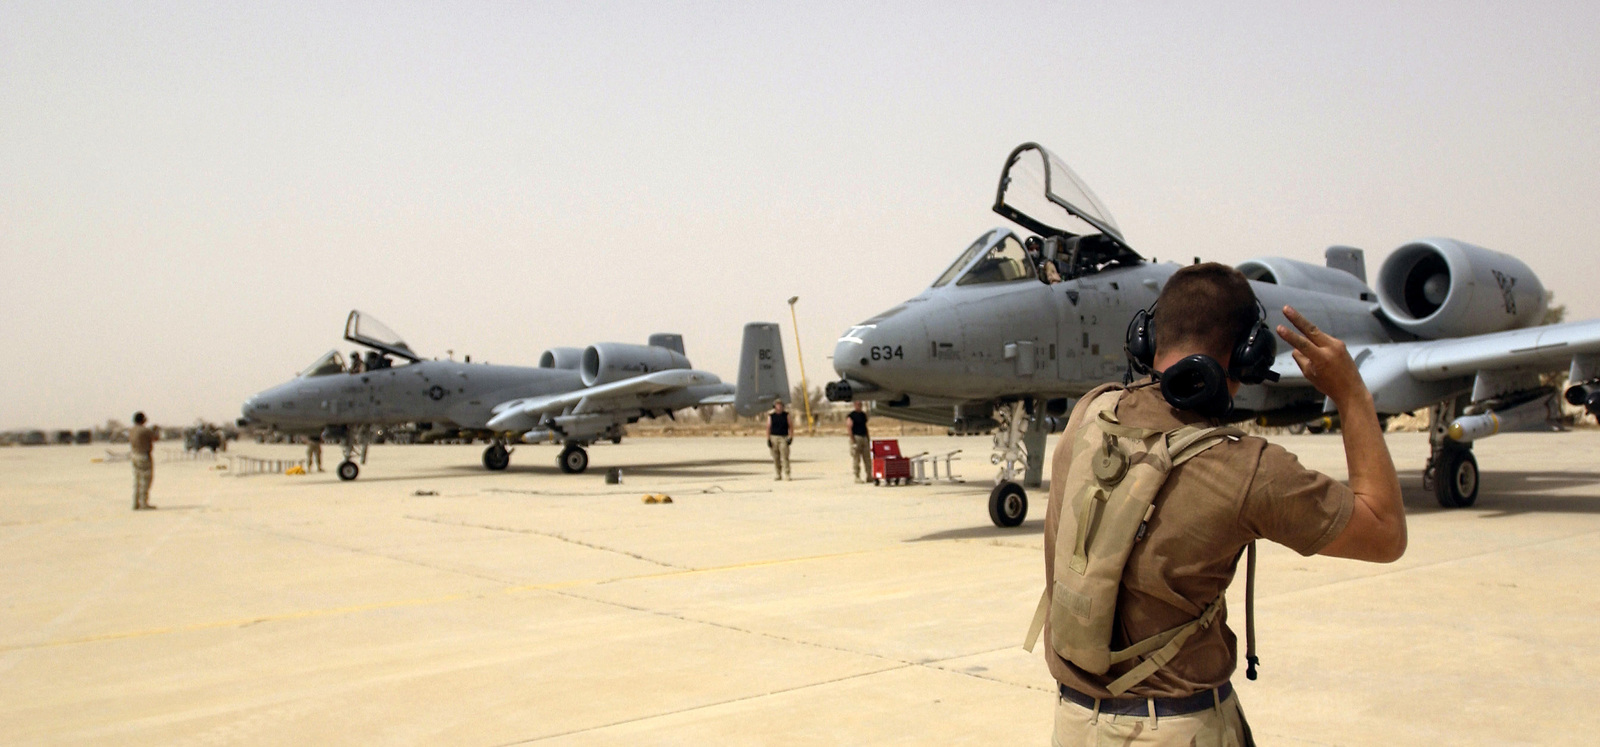 US Air Force (USAF) SENIOR AIRMAN (SRA) Rusty McRaney, Crew CHIEF, 392nd Air Expeditionary Wing (AEW), launches his A-10 Thunderbolt II aircraft on a mission at a forward deployed location in Southern Iraq, during Operation IRAQI FREEDOM